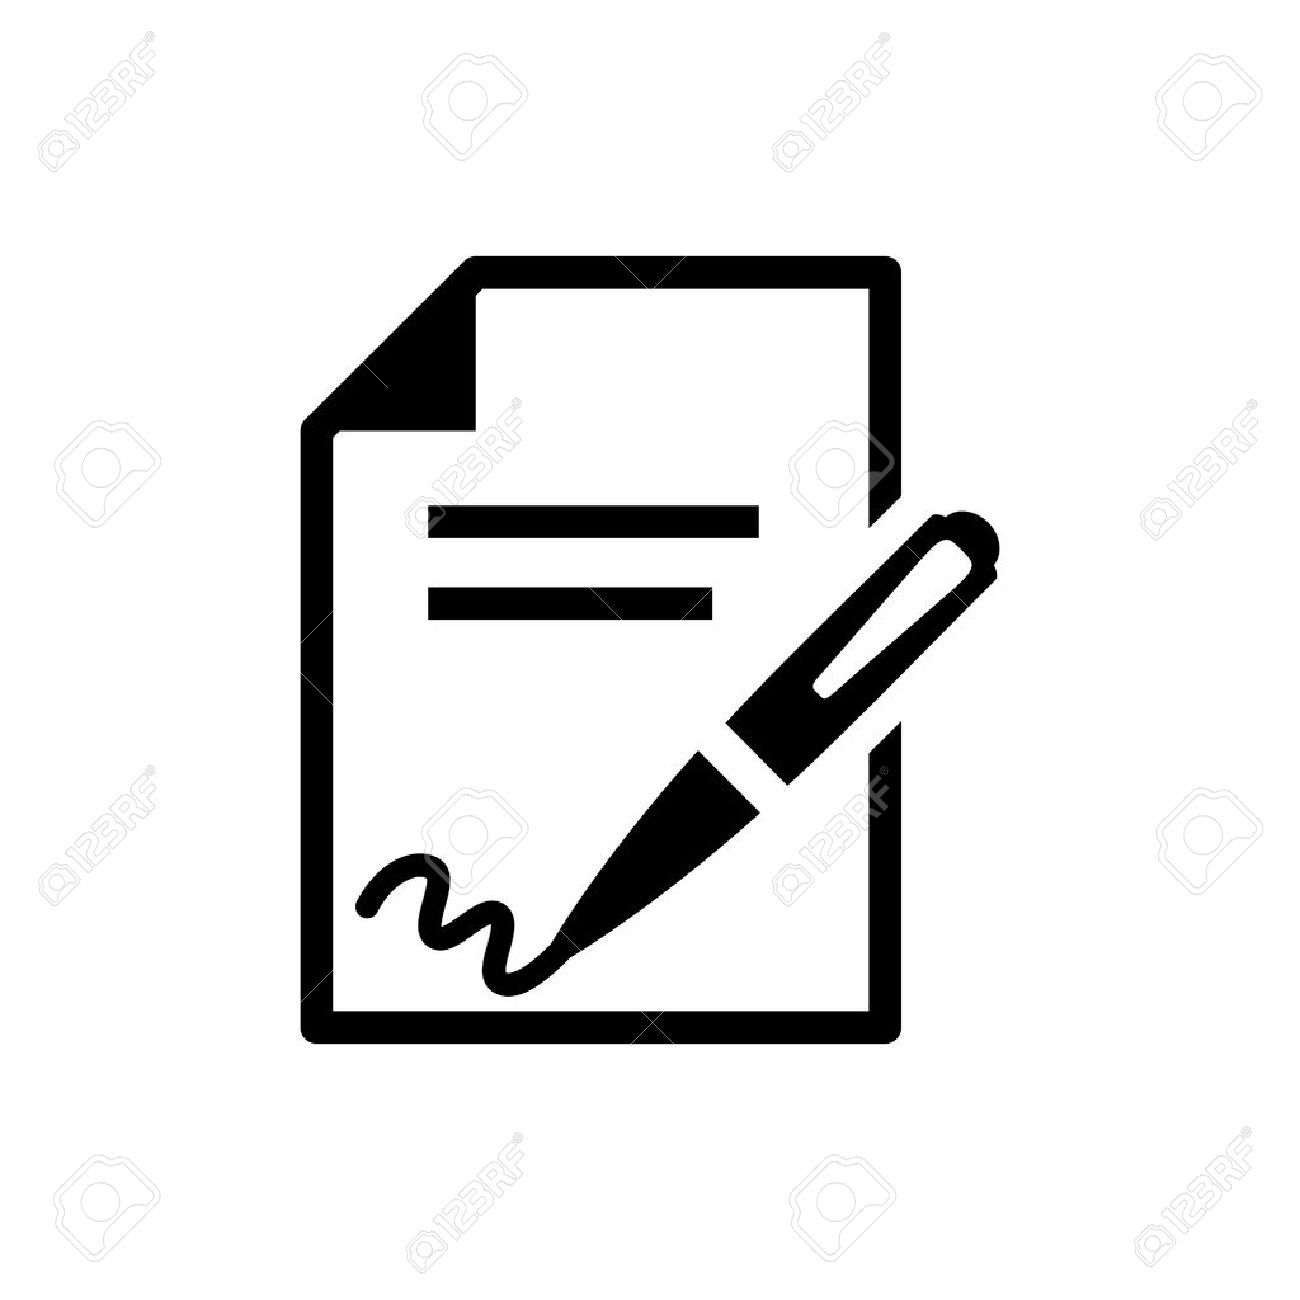 signing contract icon - 45803598